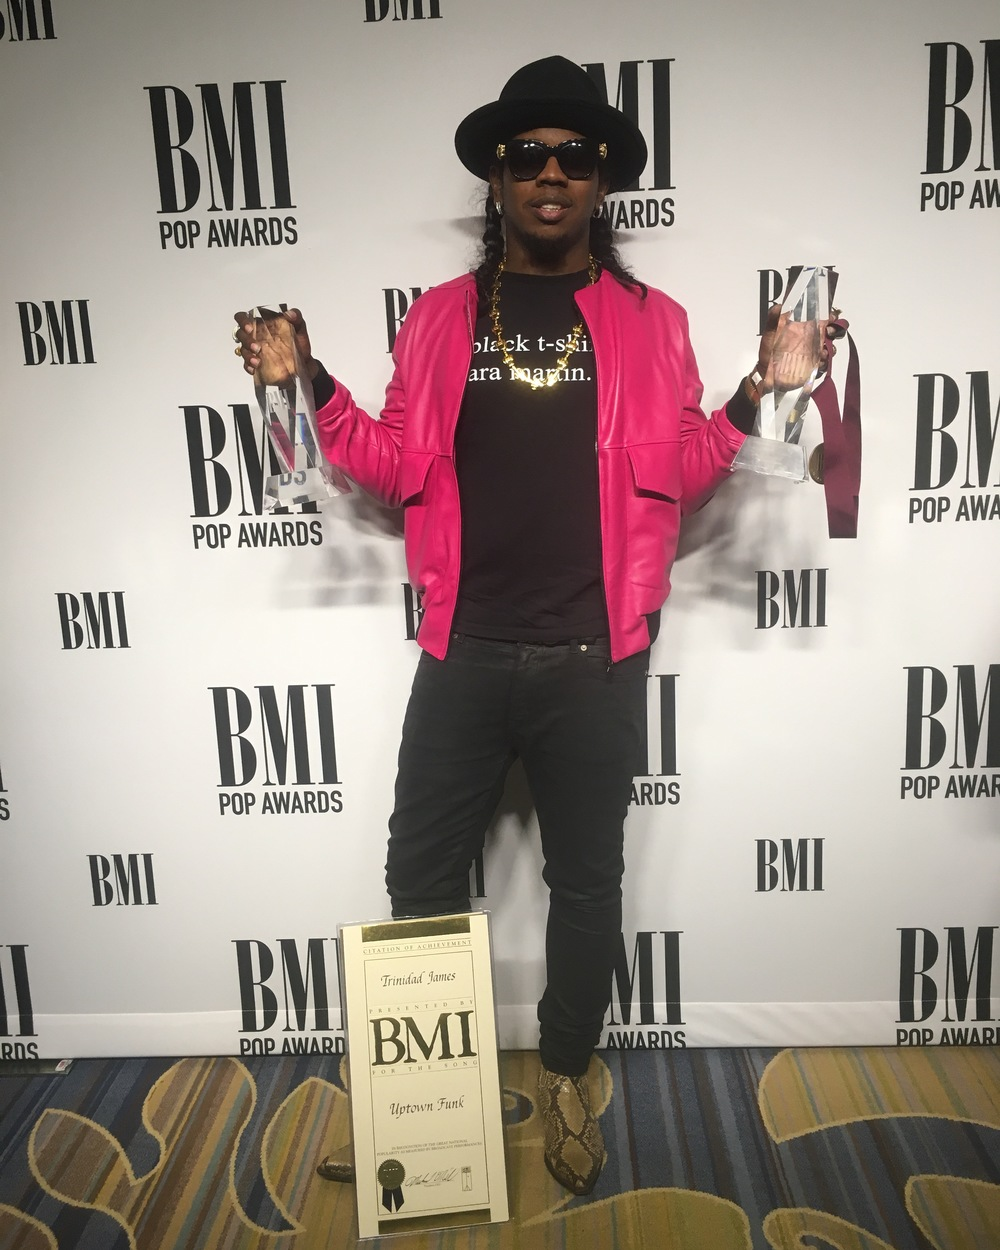 trinidad-james-bmi-awards-clara-martin-jacket-t-shirt